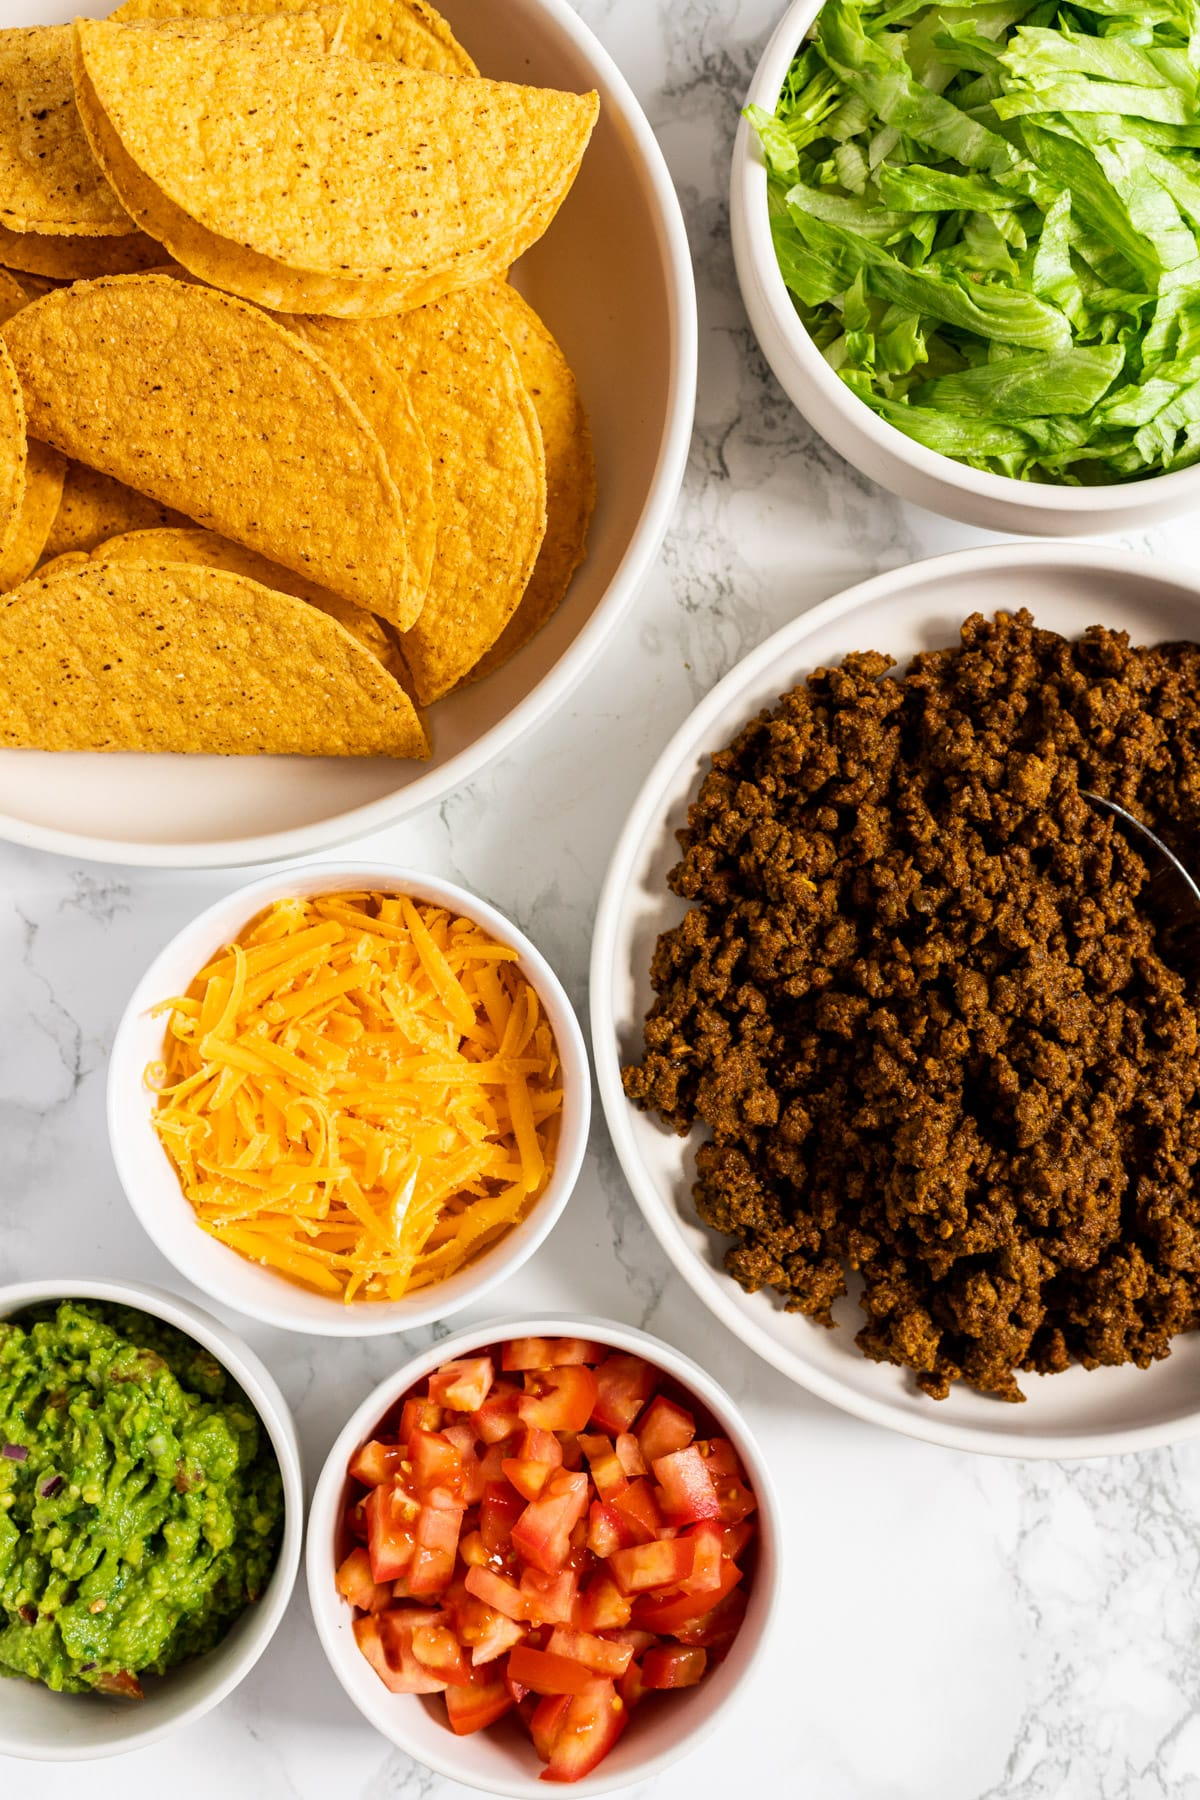 A top down view of a ground beef taco bar with all the toppings in bowls.